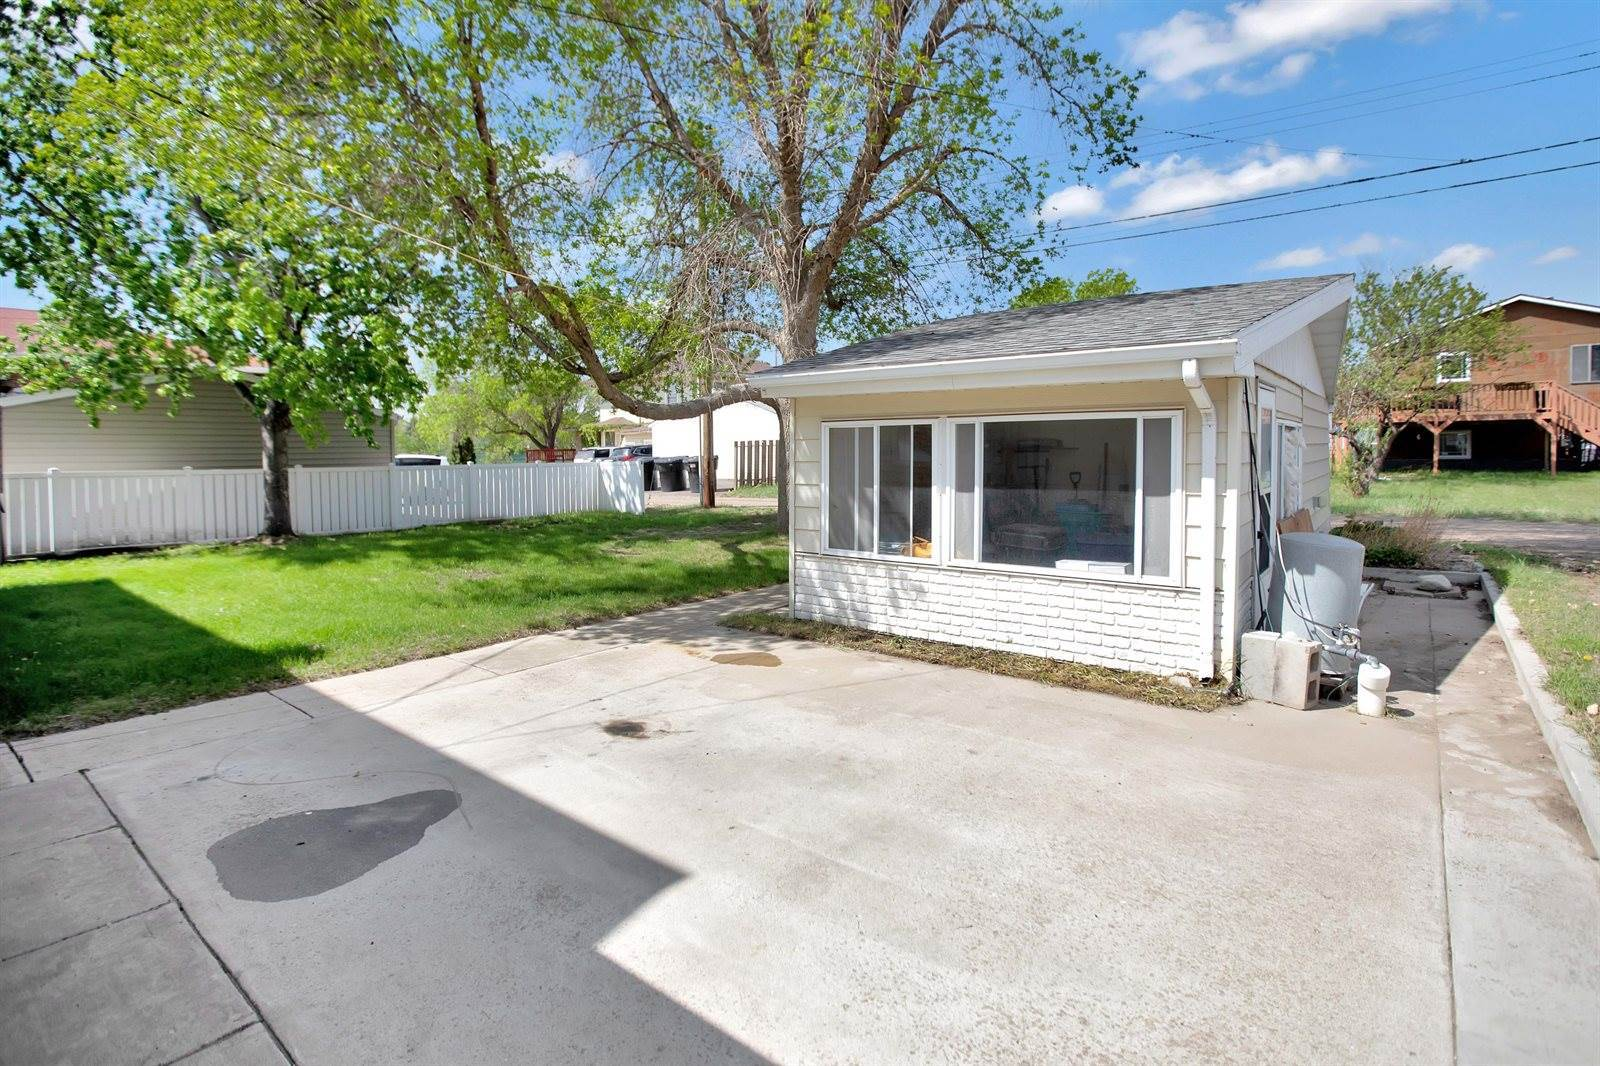 1815 7th Ave East, Williston, ND 58801